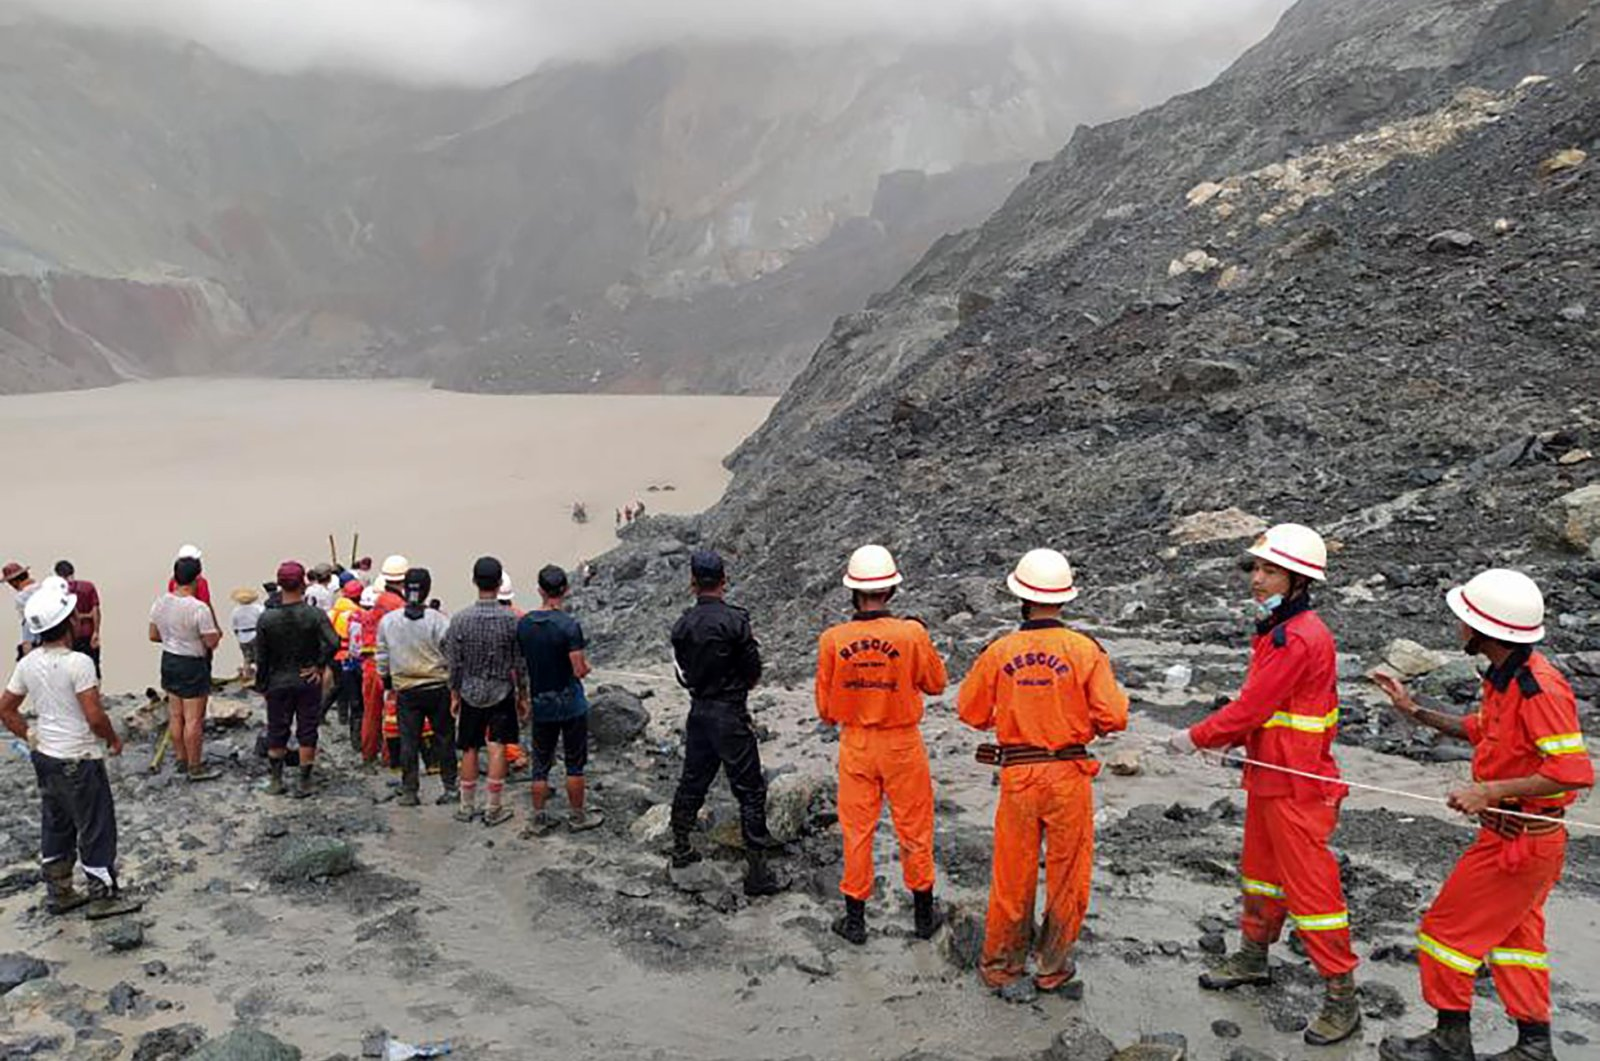 A handout photo made available by the Myanmar Fire Services Department shows rescue workers searching for people after a landslide accident at a jade mining site in Hpakant, Kachin State, Myanmar, July 2, 2020. (Myanmar Fire Services via EPA)